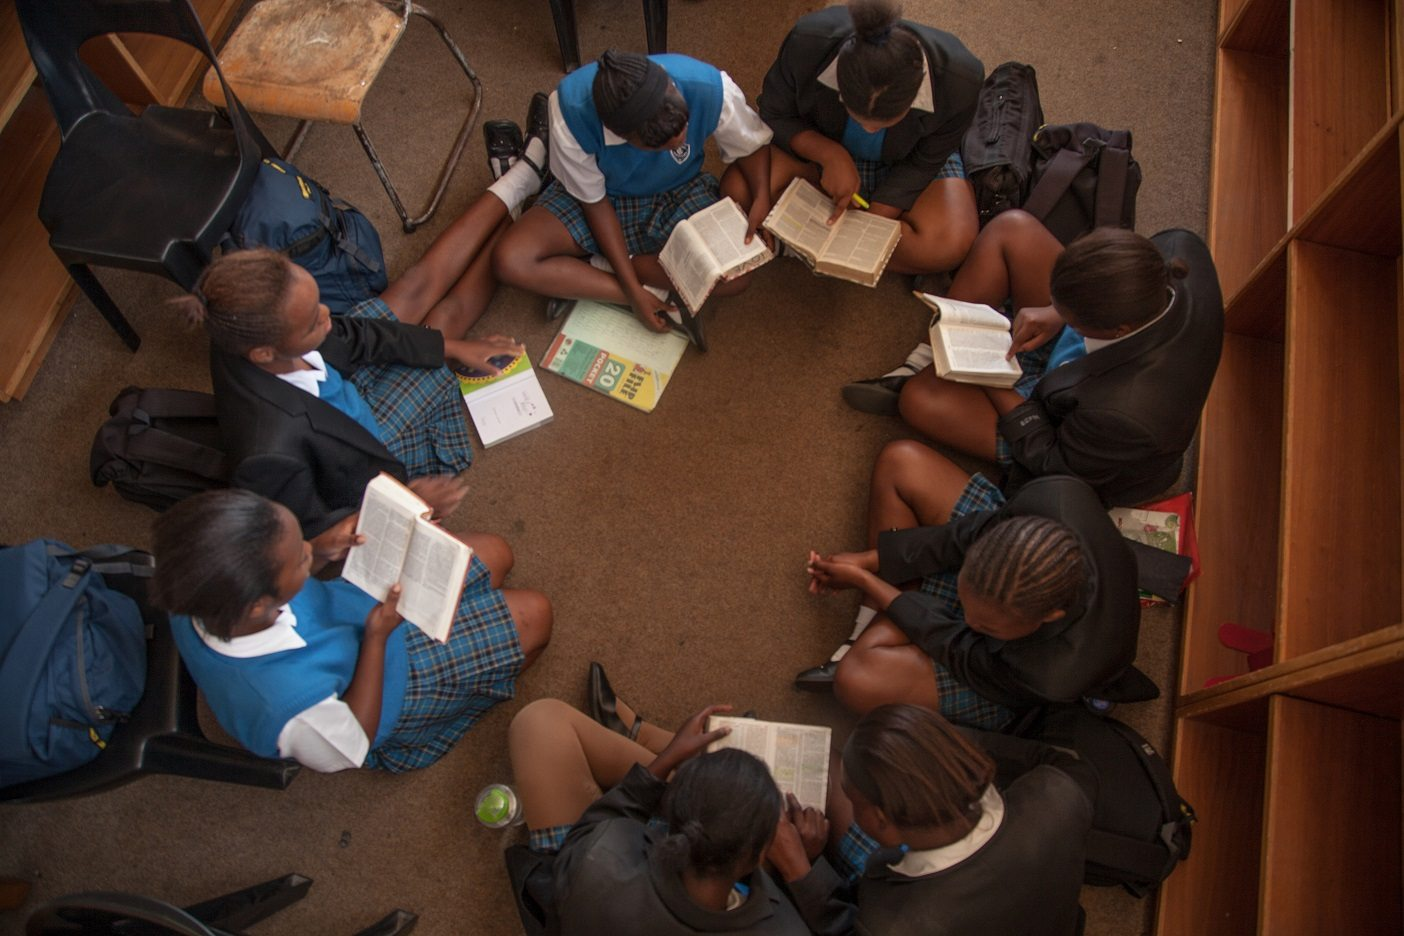 #YouthMonth Back to School: Insights from Learners on Education during COVID-19